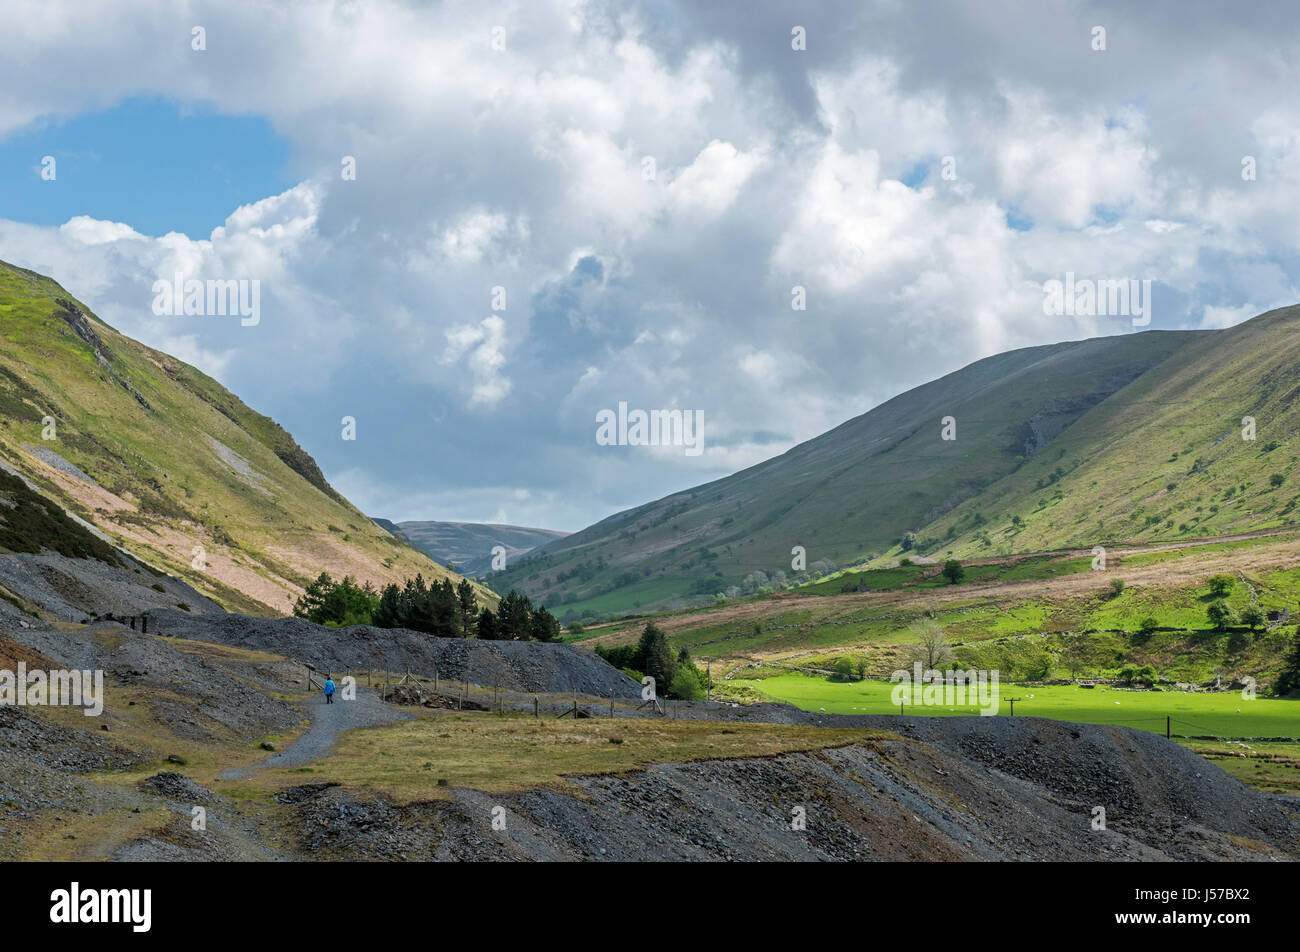 Cwmystwyth Lead Mine Workings Cardiganshire Mid Wales - Stock Image